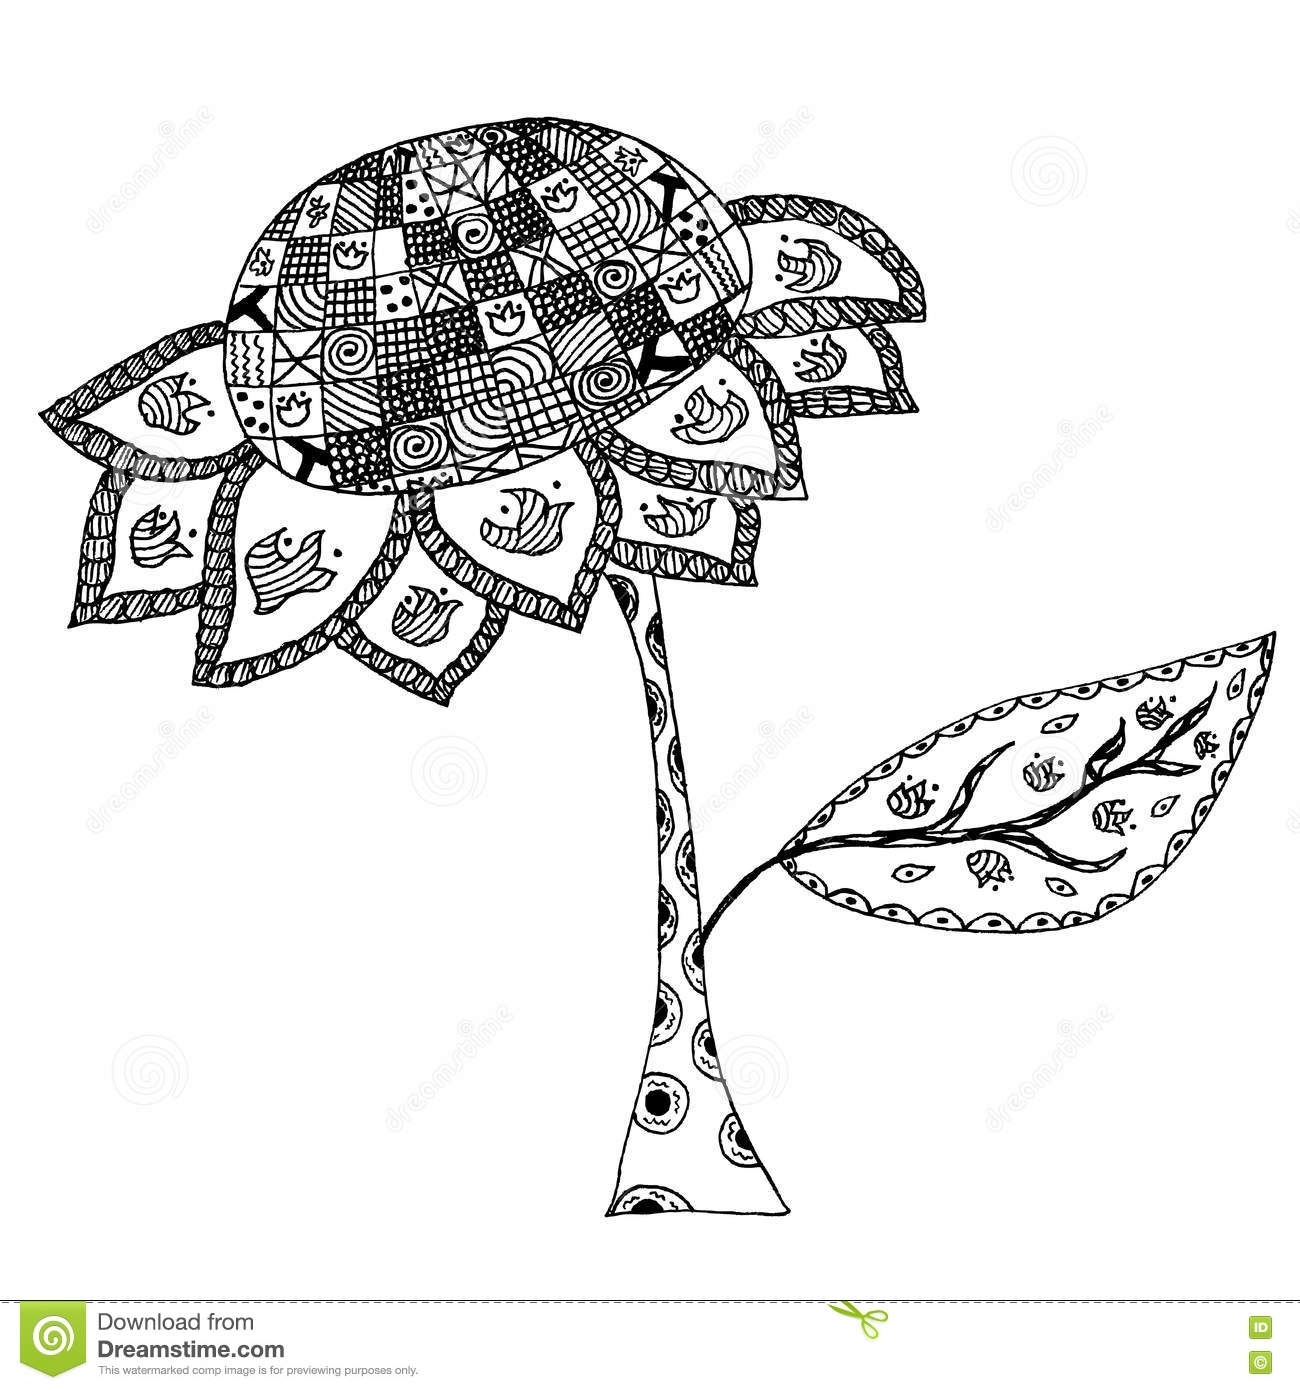 Sunflower In Doodle Style Stock Vector Illustration Of Henna